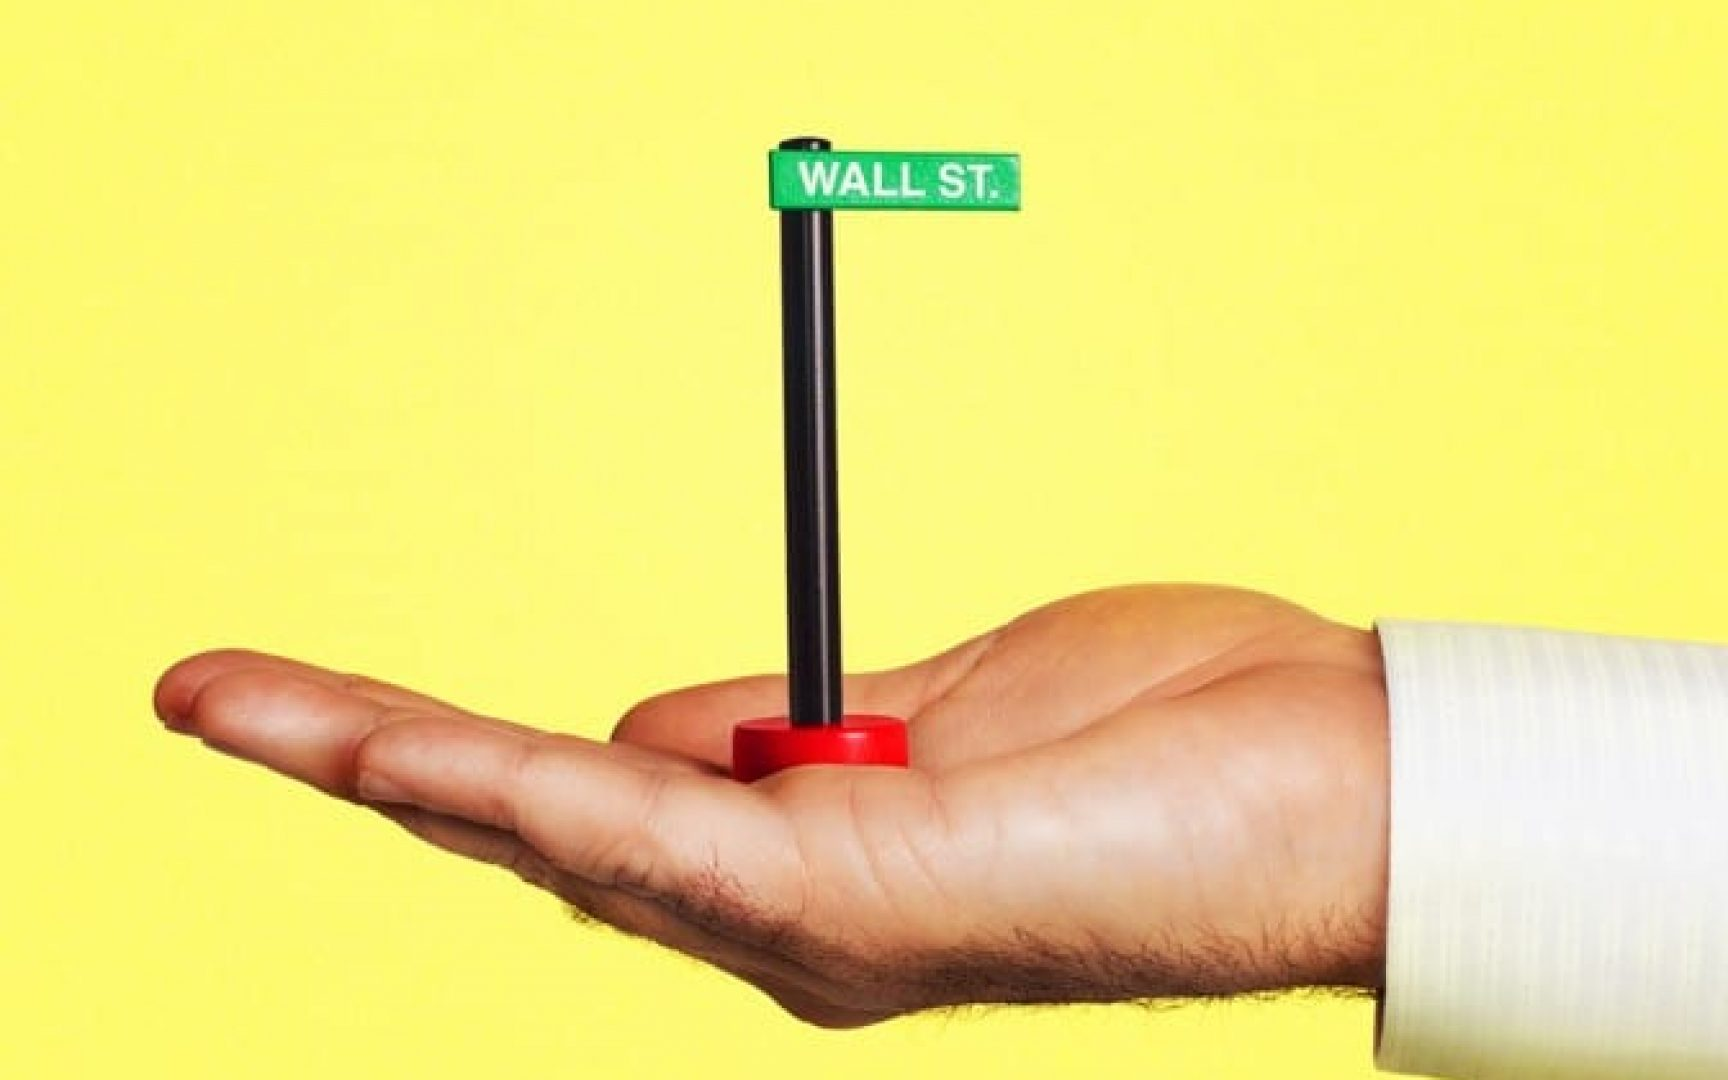 Hand holding Wall Street street sign in palm.